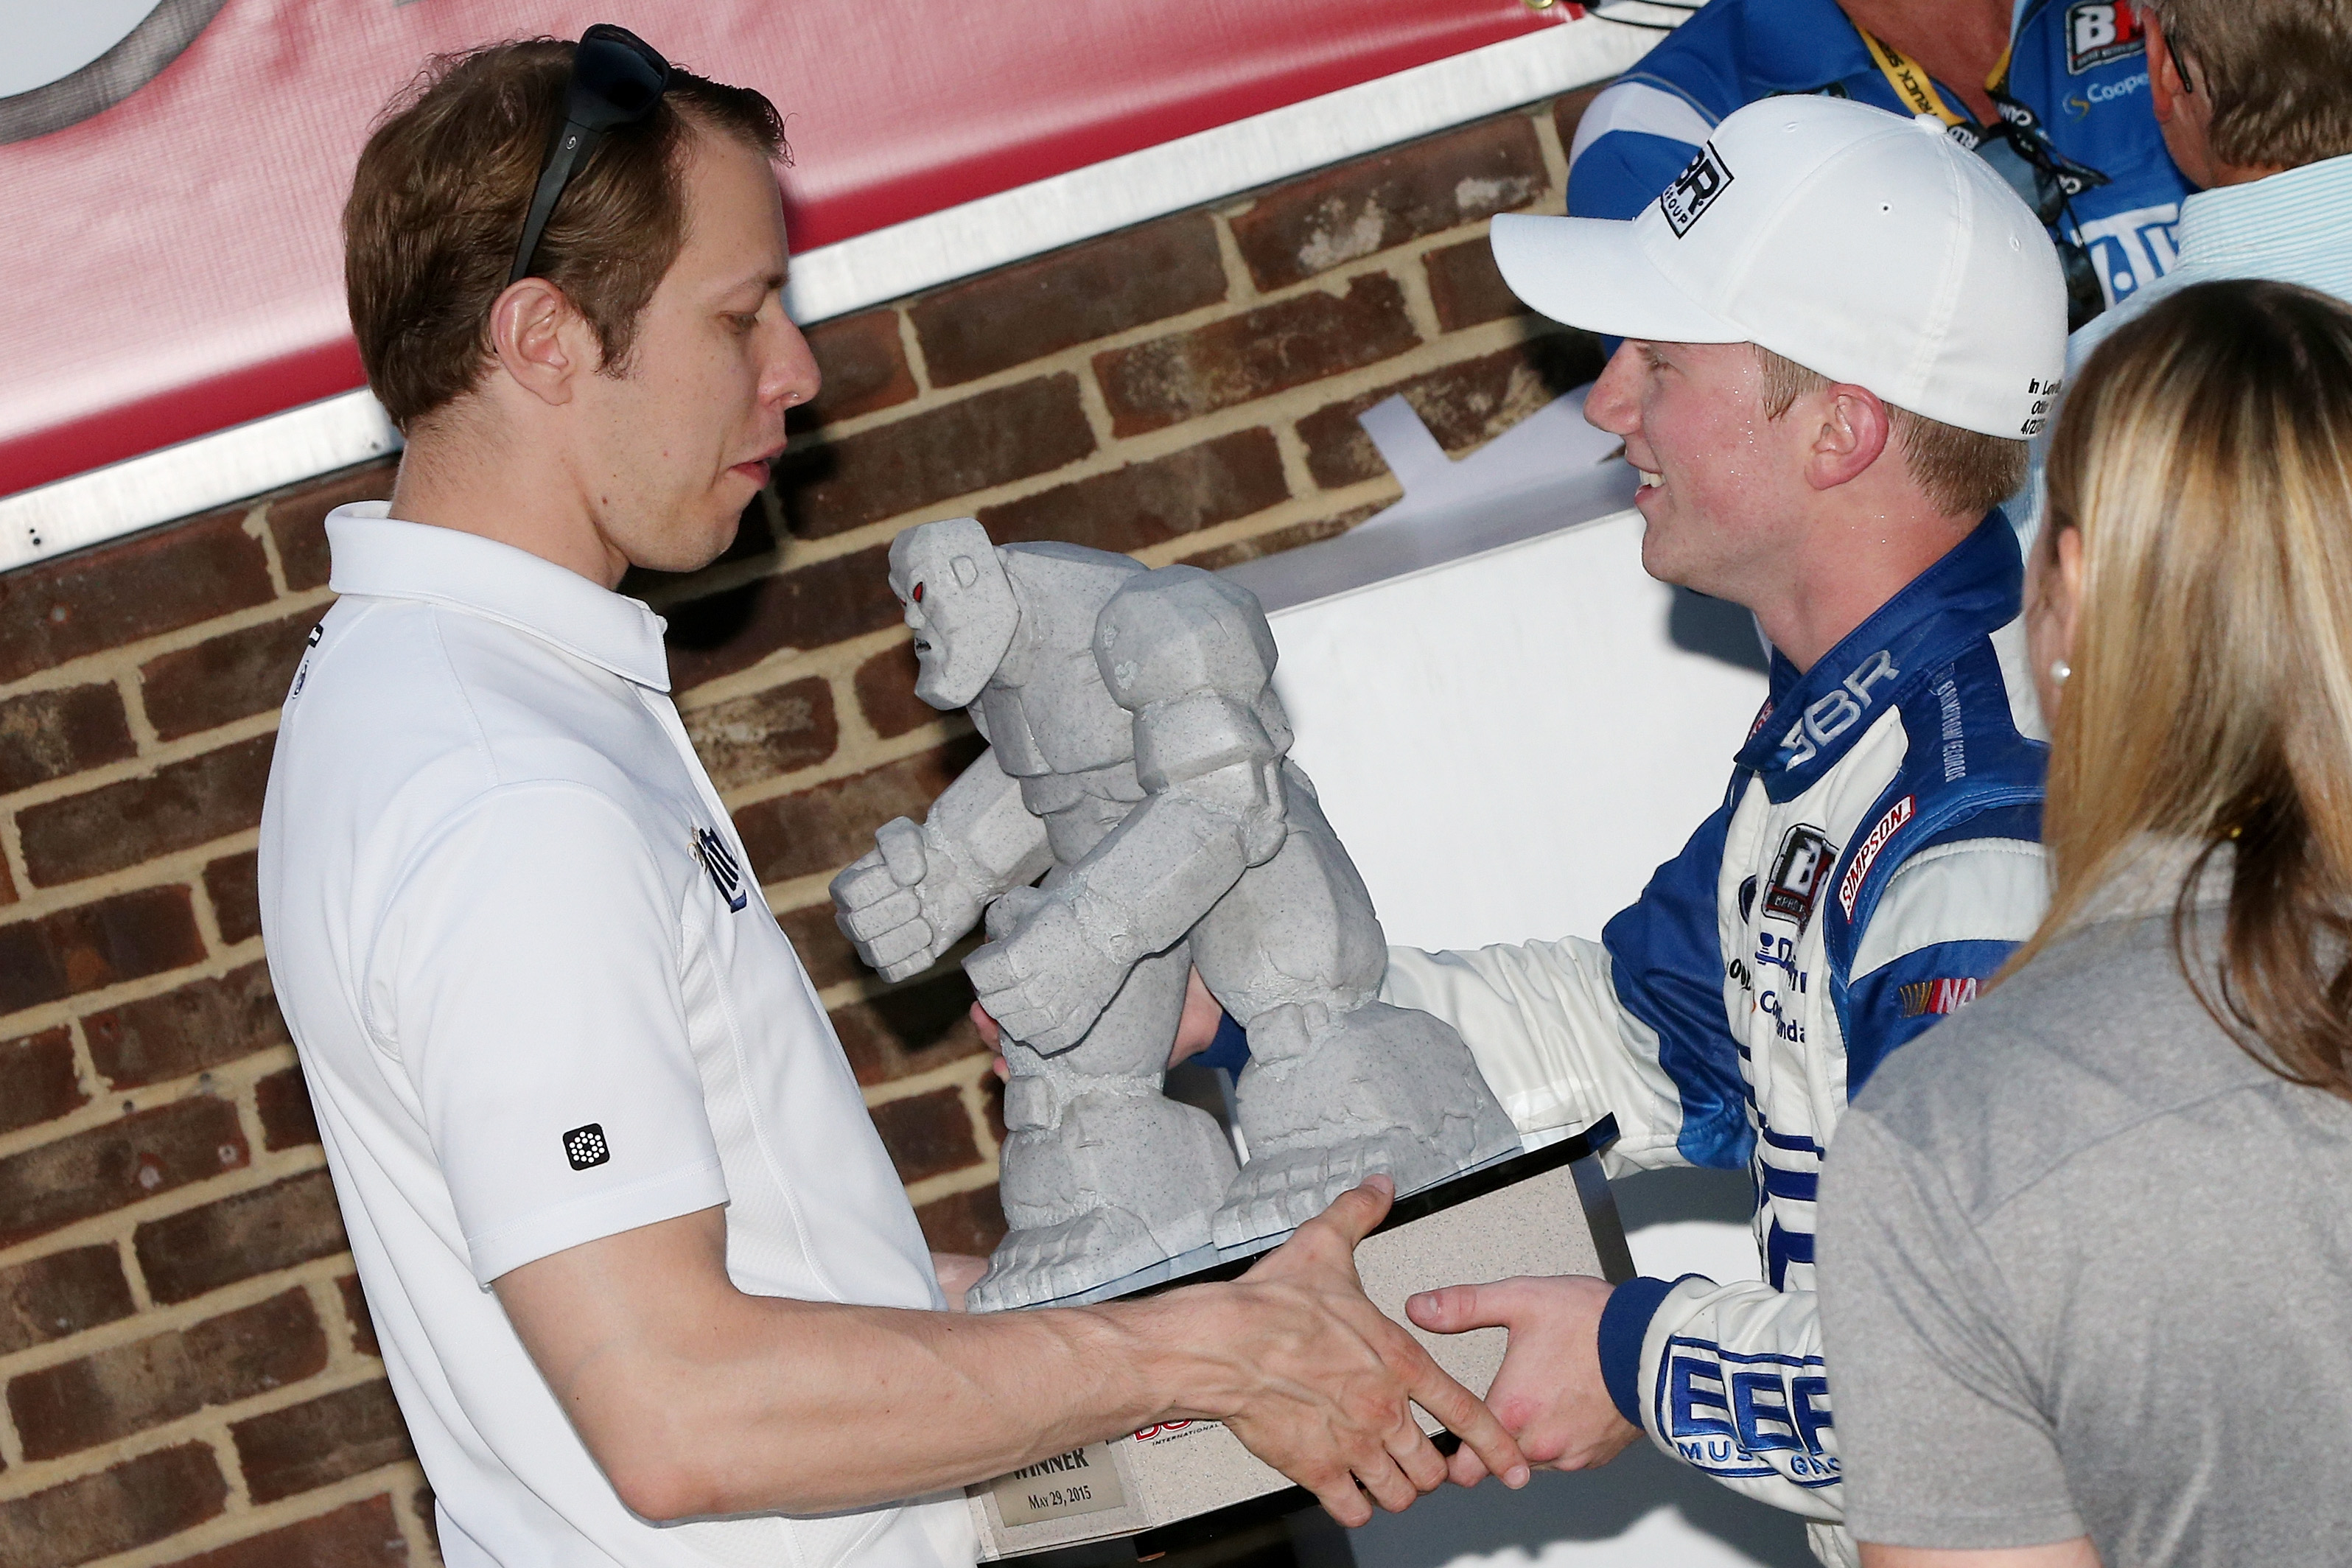 DOVER, DE – MAY 29: Tyler Reddick, driver of the #19 BBR Music Group Ford, right, celebrates with team owner and NASCAR driver Brad Keselowski in Victory Lane after winning during the NASCAR Camping World Truck Series Lucas Oil 200 at Dover International Speedway on May 29, 2015 in Dover, Delaware. (Photo by Sean Gardner/Getty Images)   Getty Images